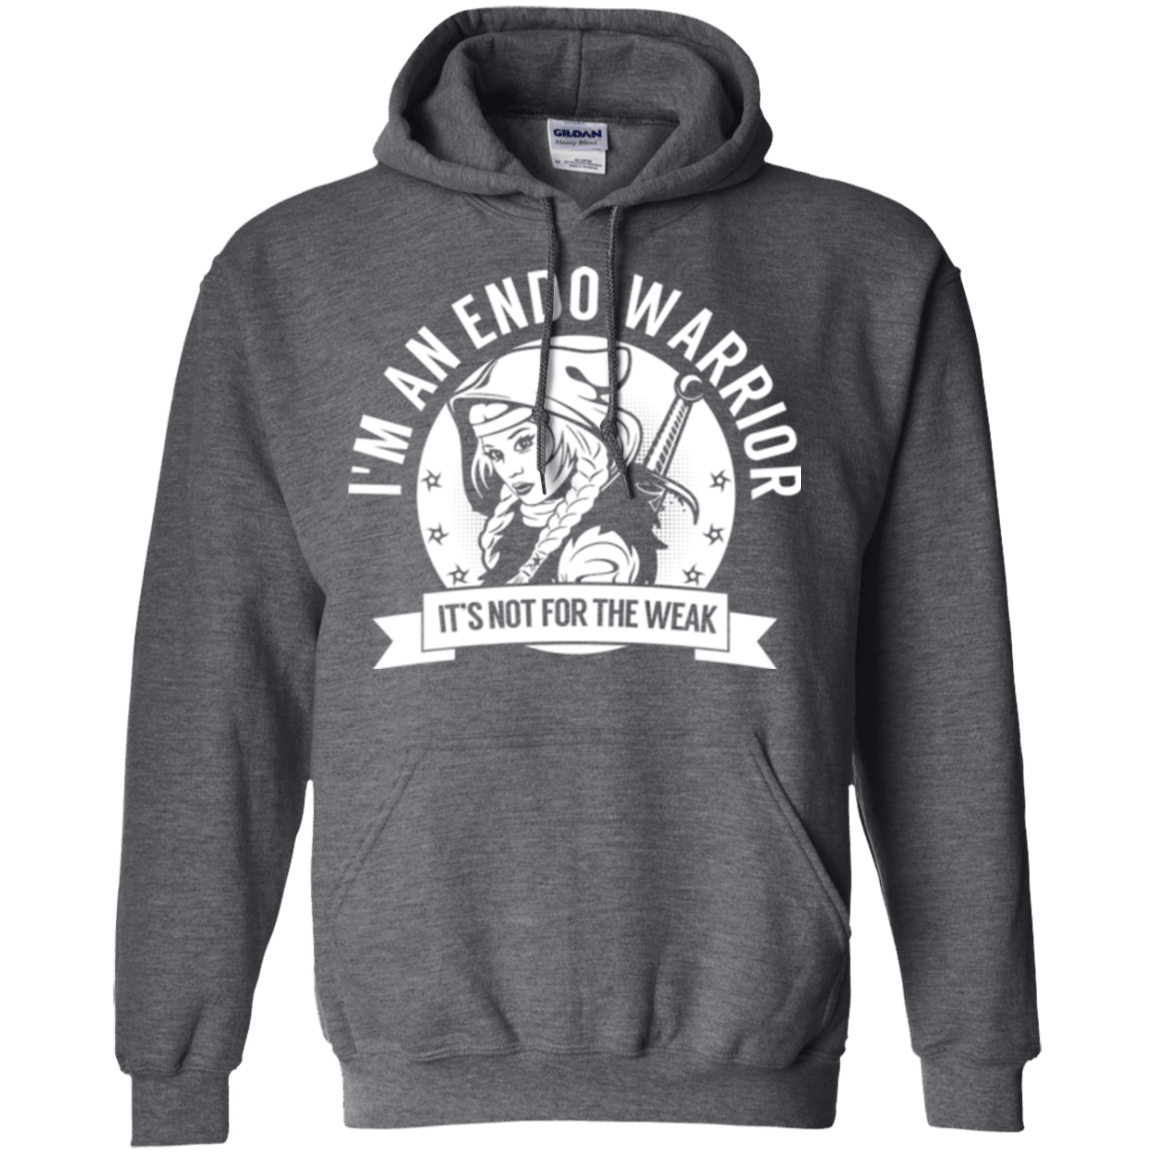 Endometriosis - Endo Warrior Hooded Pullover Hoodie 8 oz. - The Unchargeables